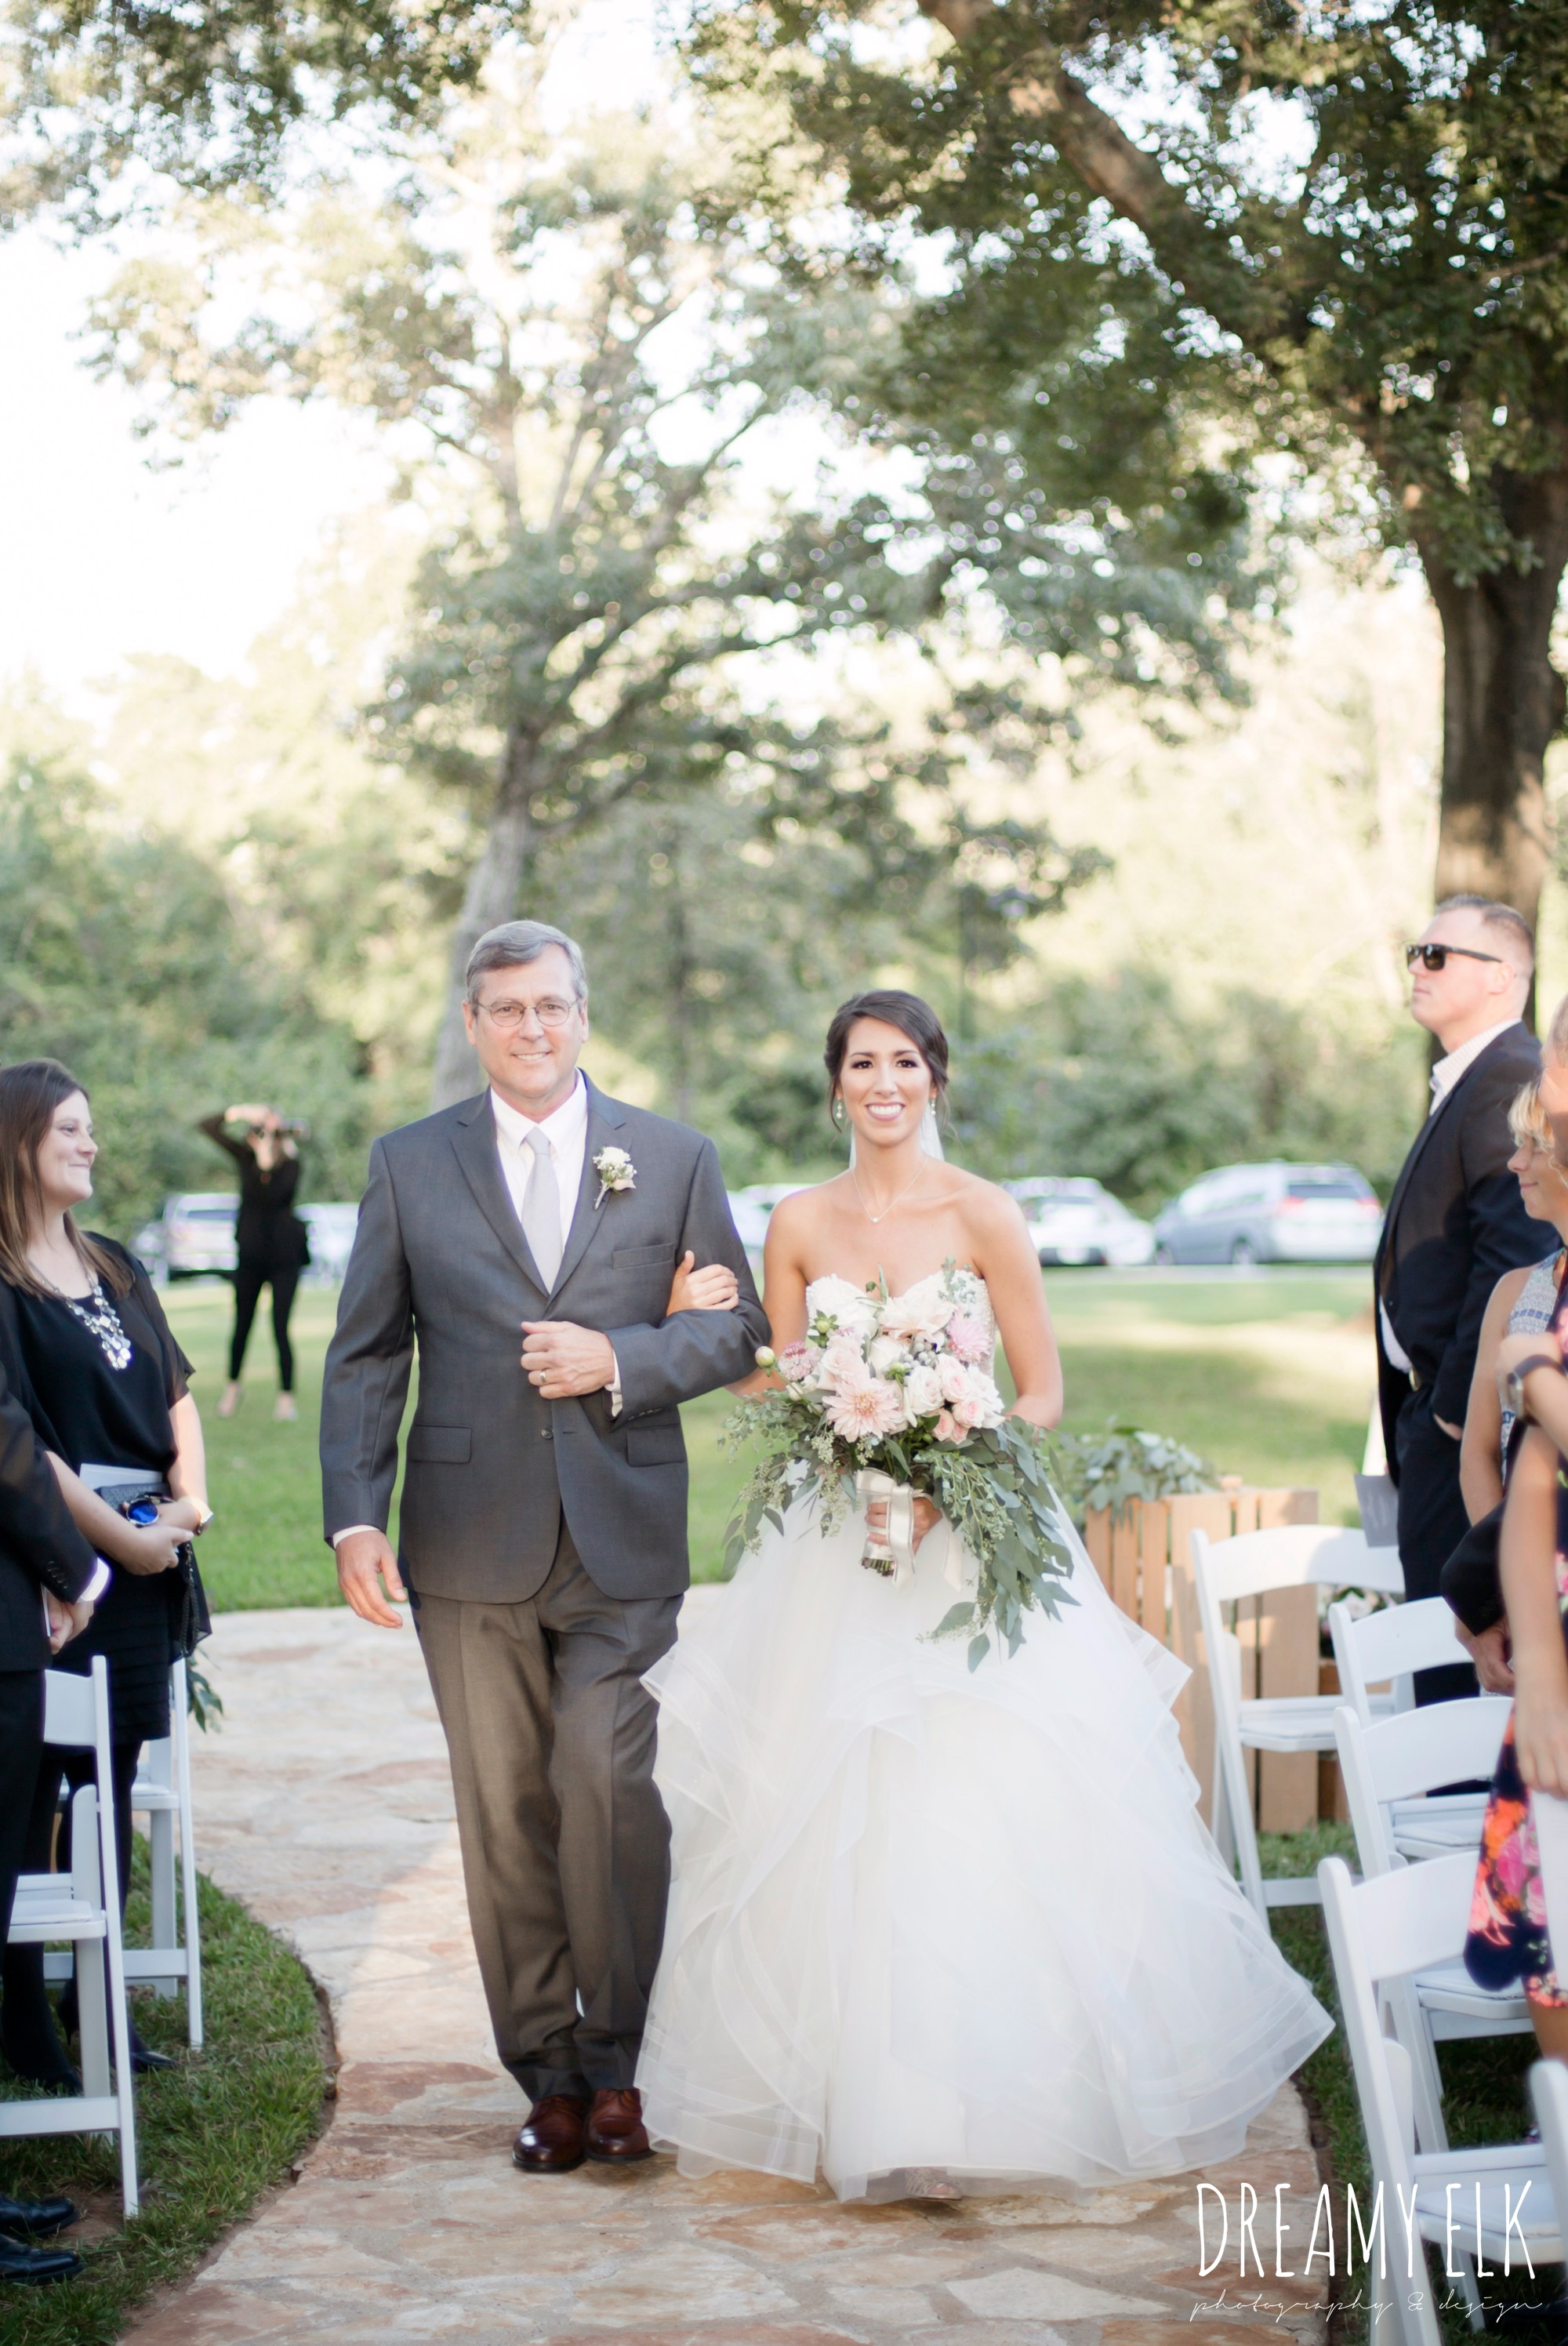 bride and dad walking down the aisle, outdoor fall october wedding photo, blush and gray wedding, balmorhea weddings and events, dreamy elk photography and design, austin texas wedding photographer